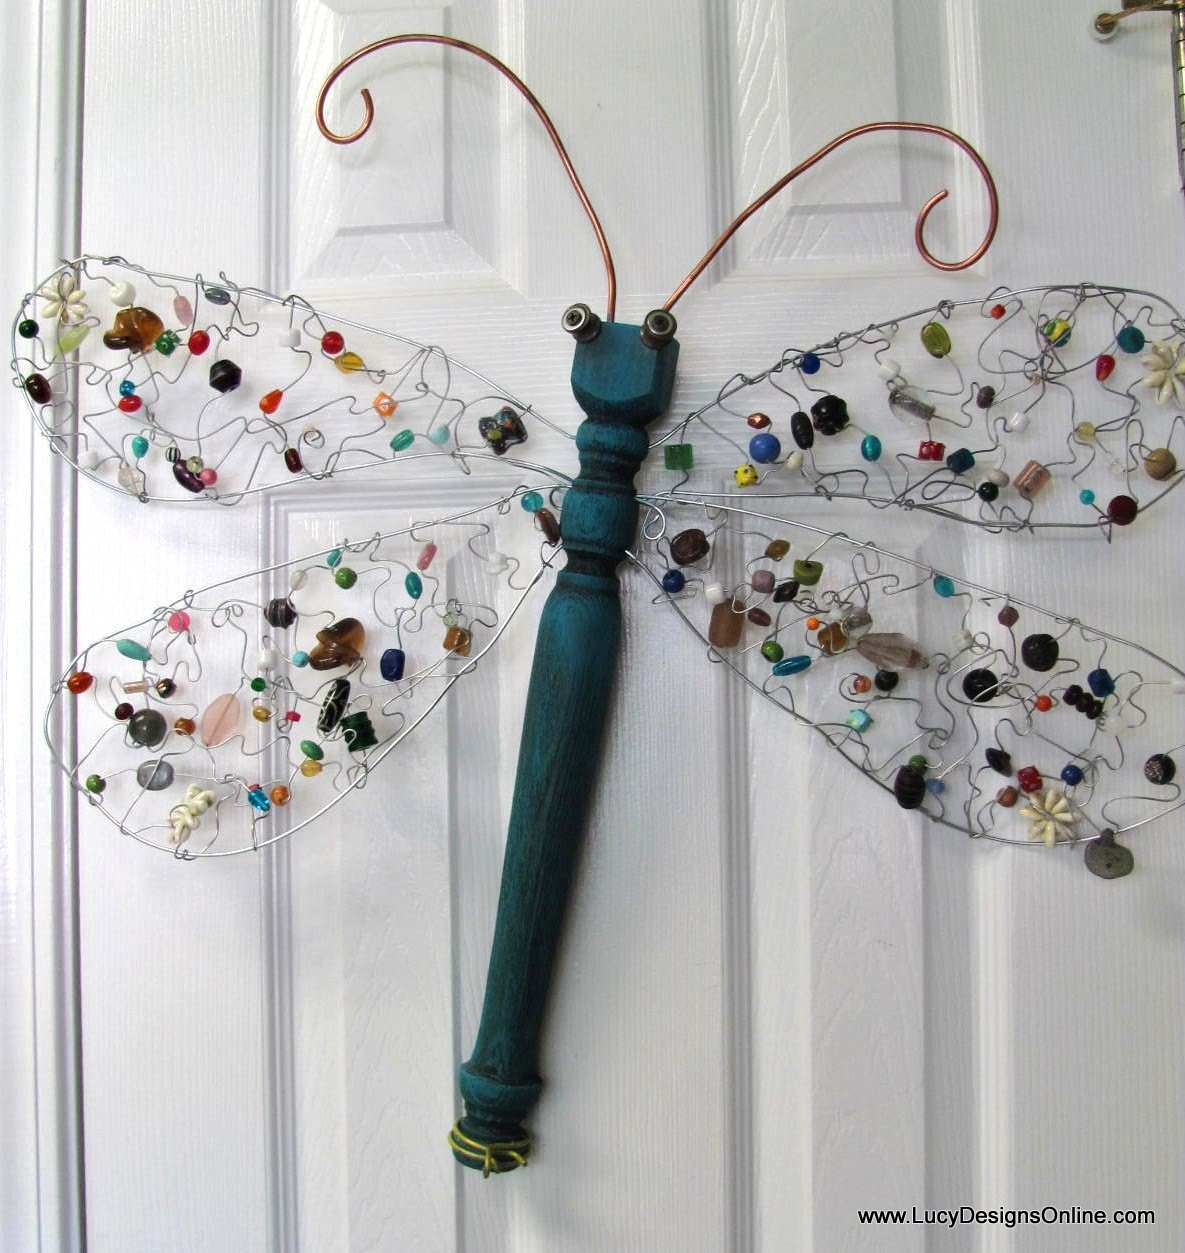 Lucy designs july 2012 table leg dragonfly beaded wings mozeypictures Choice Image